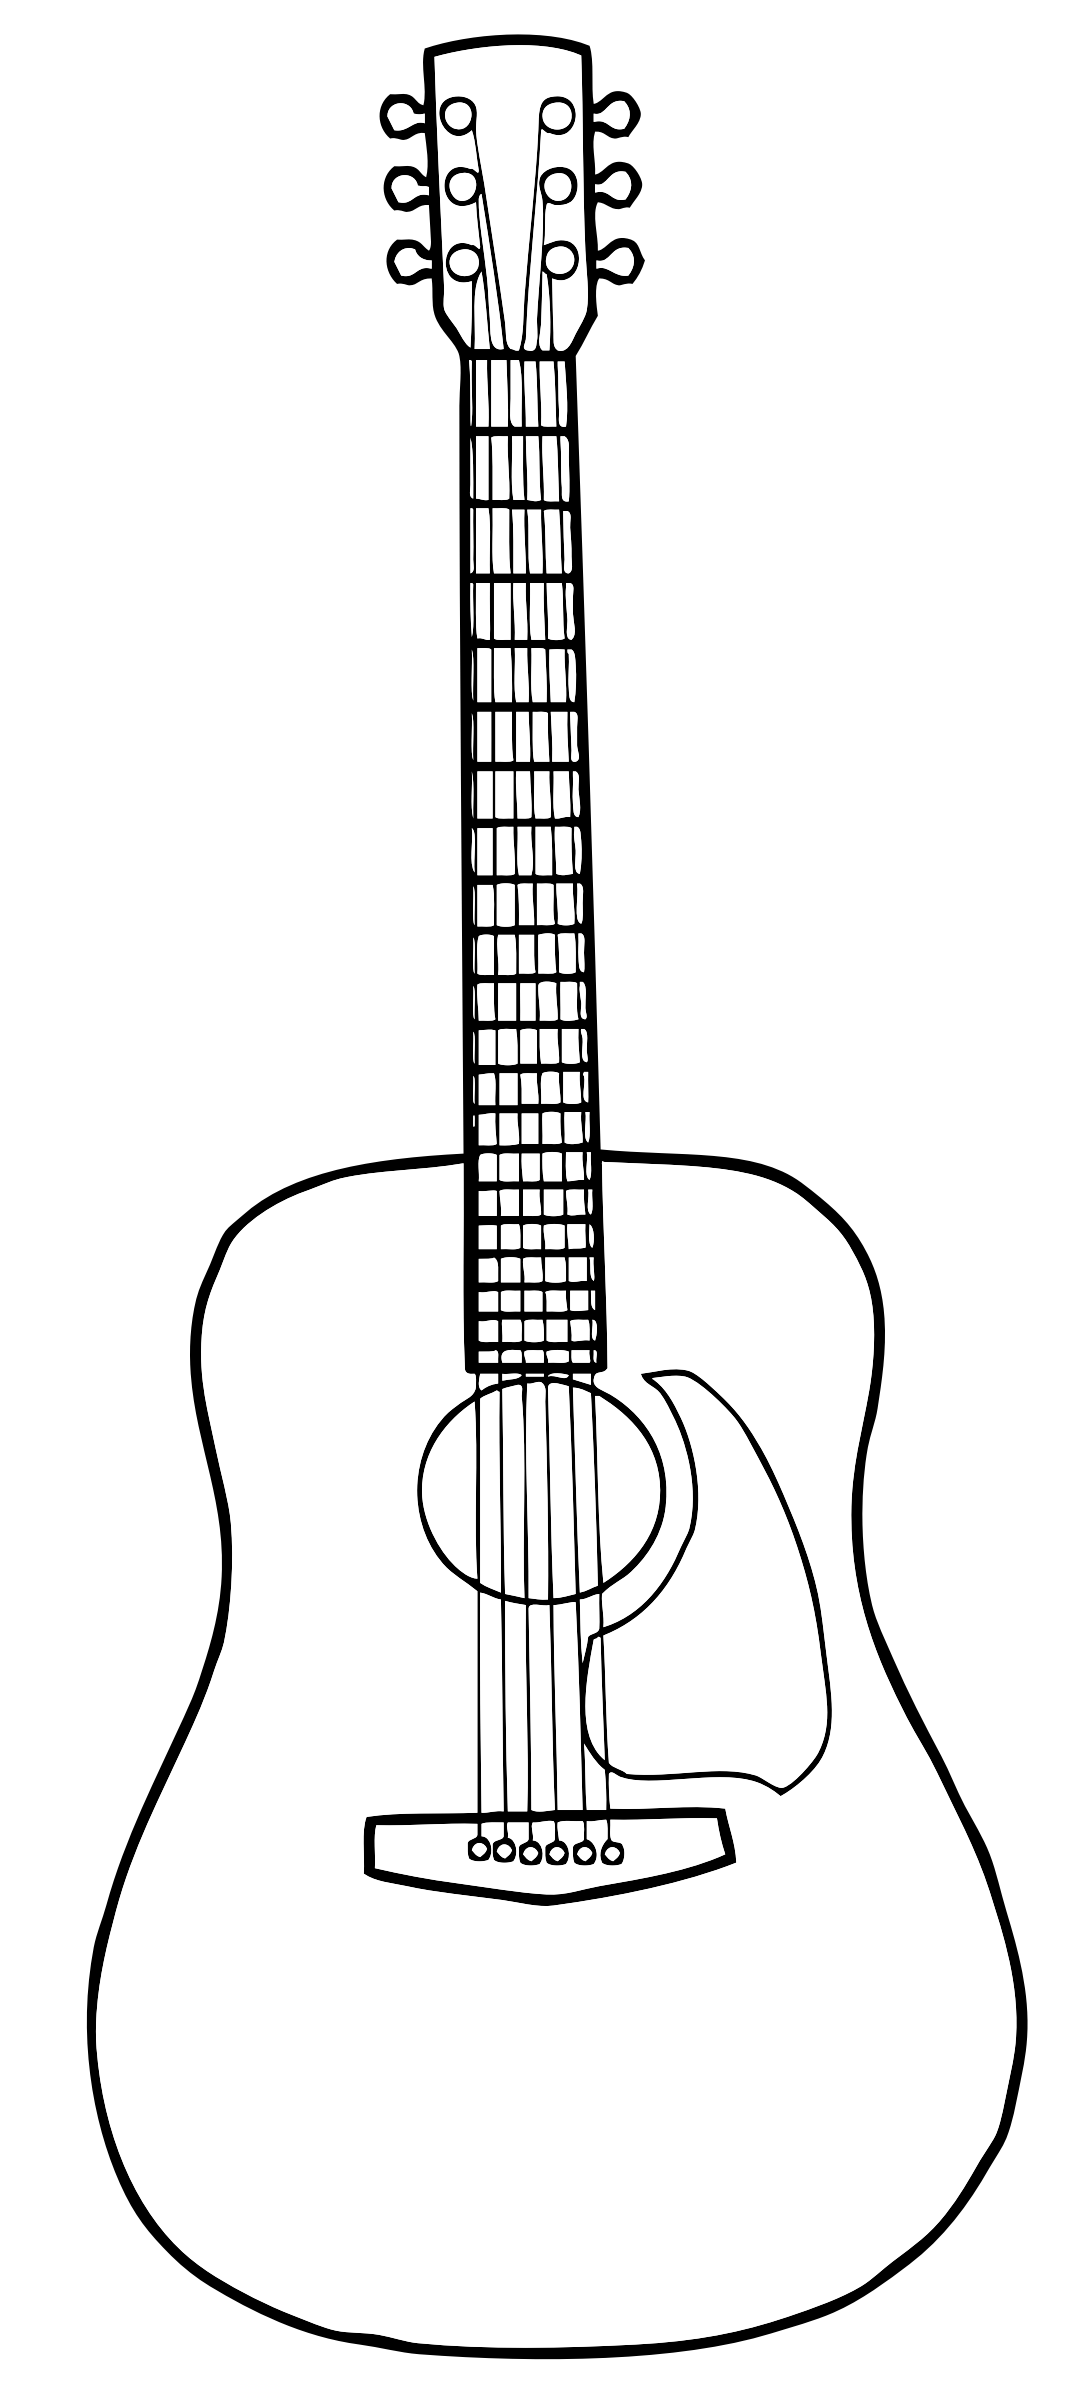 Free Guitar Outline Cliparts, Download Free Clip Art, Free.